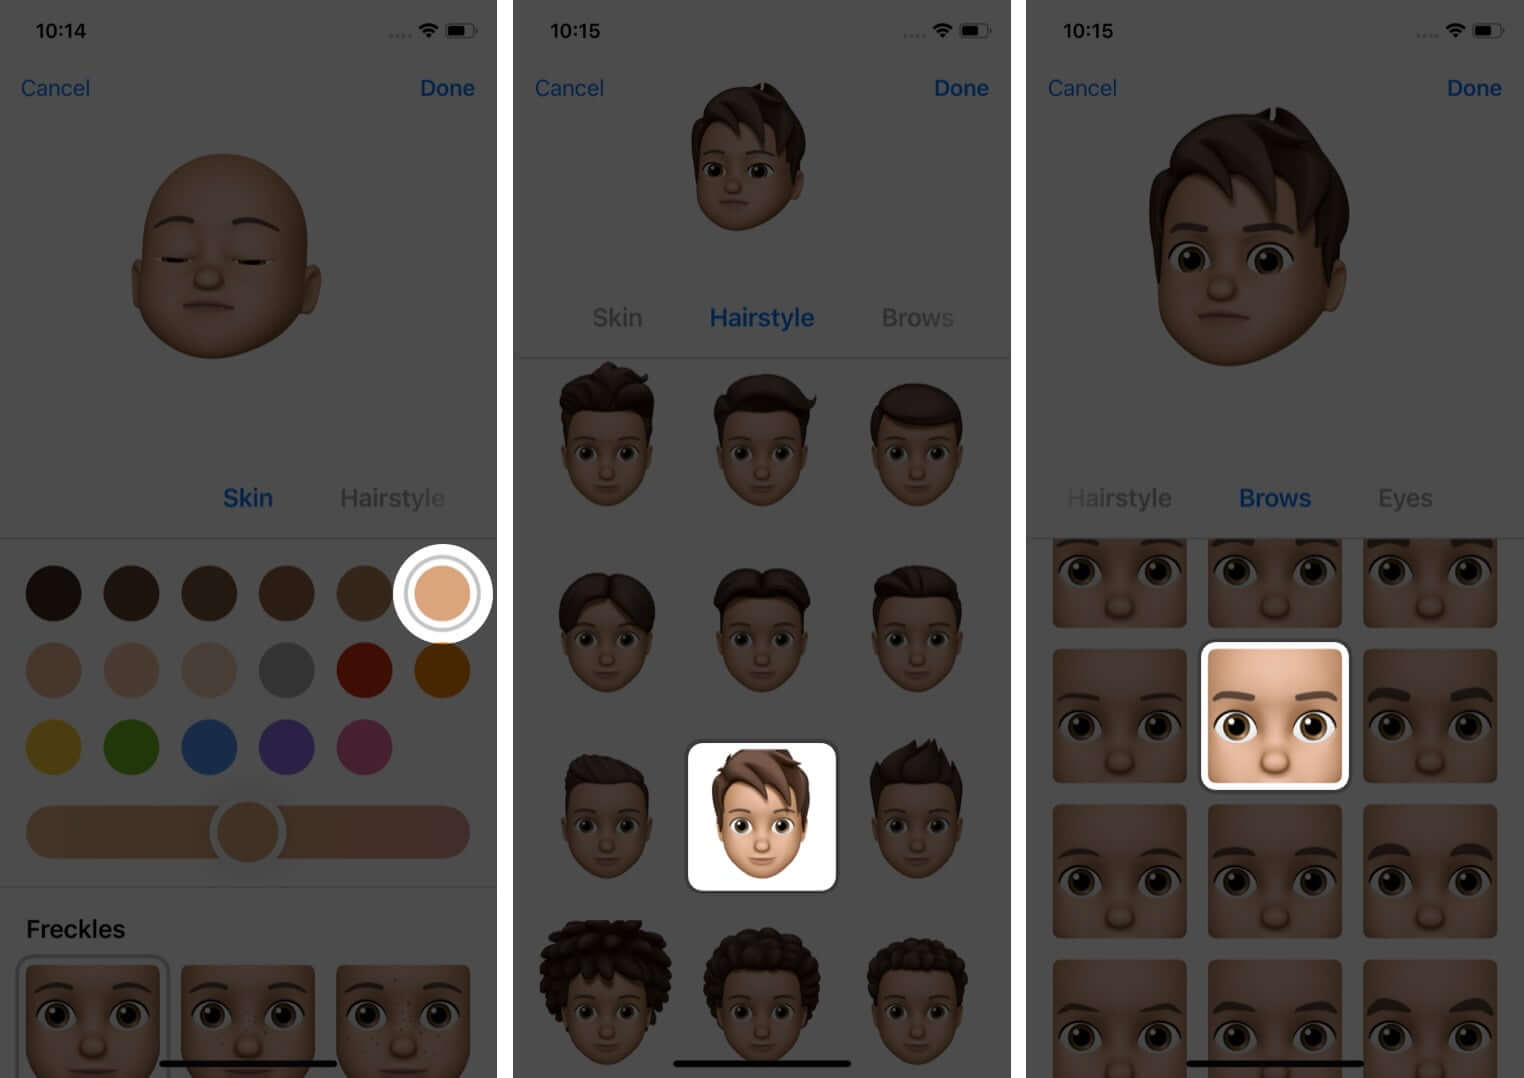 Select Skin Hairstyle and Brows